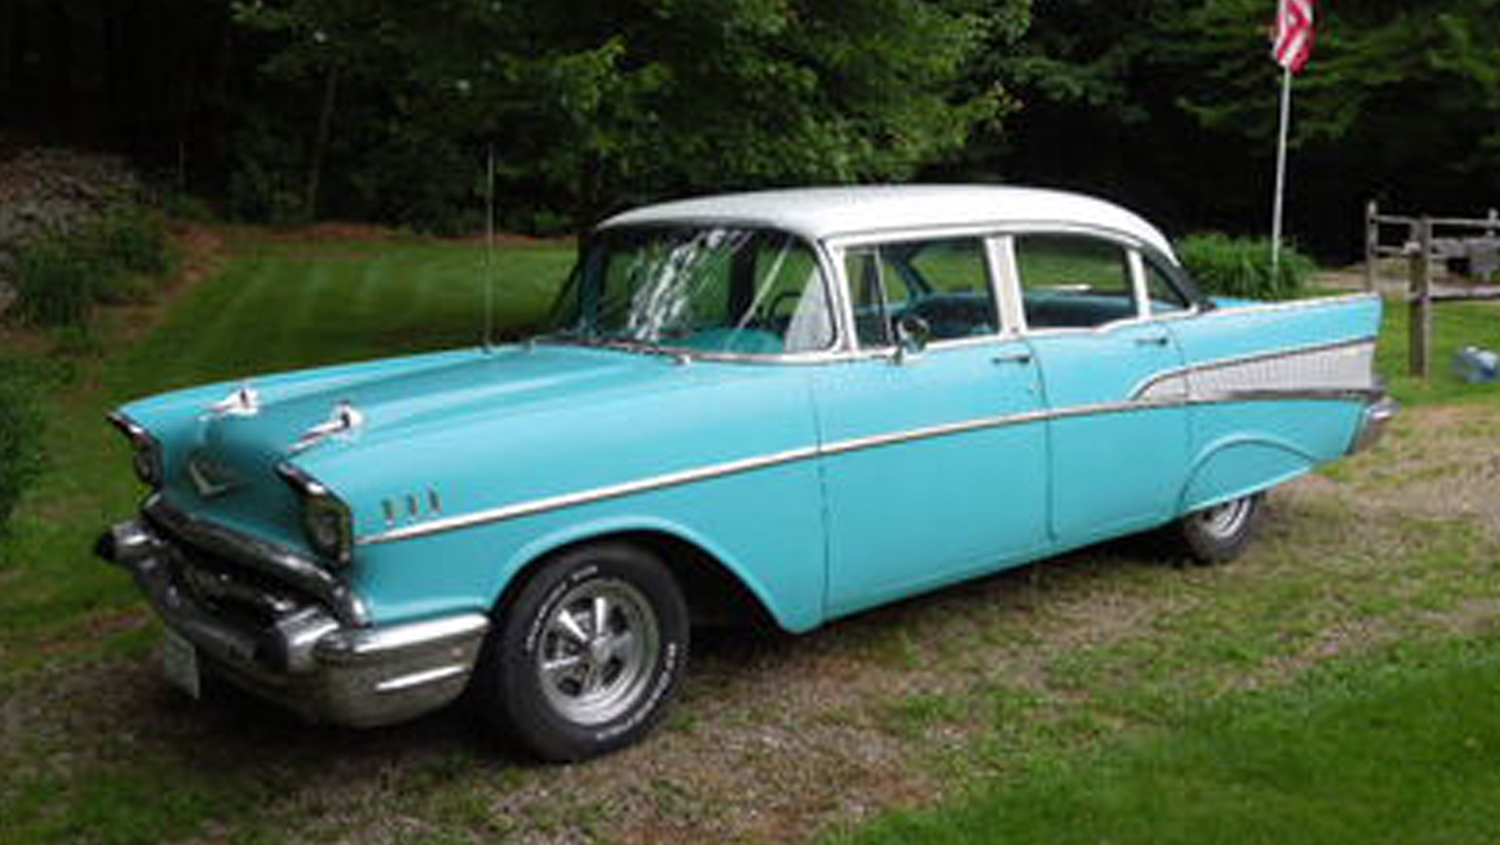 Keys to happiness: Son surprises dad with \'57 Chevy for 57th ...